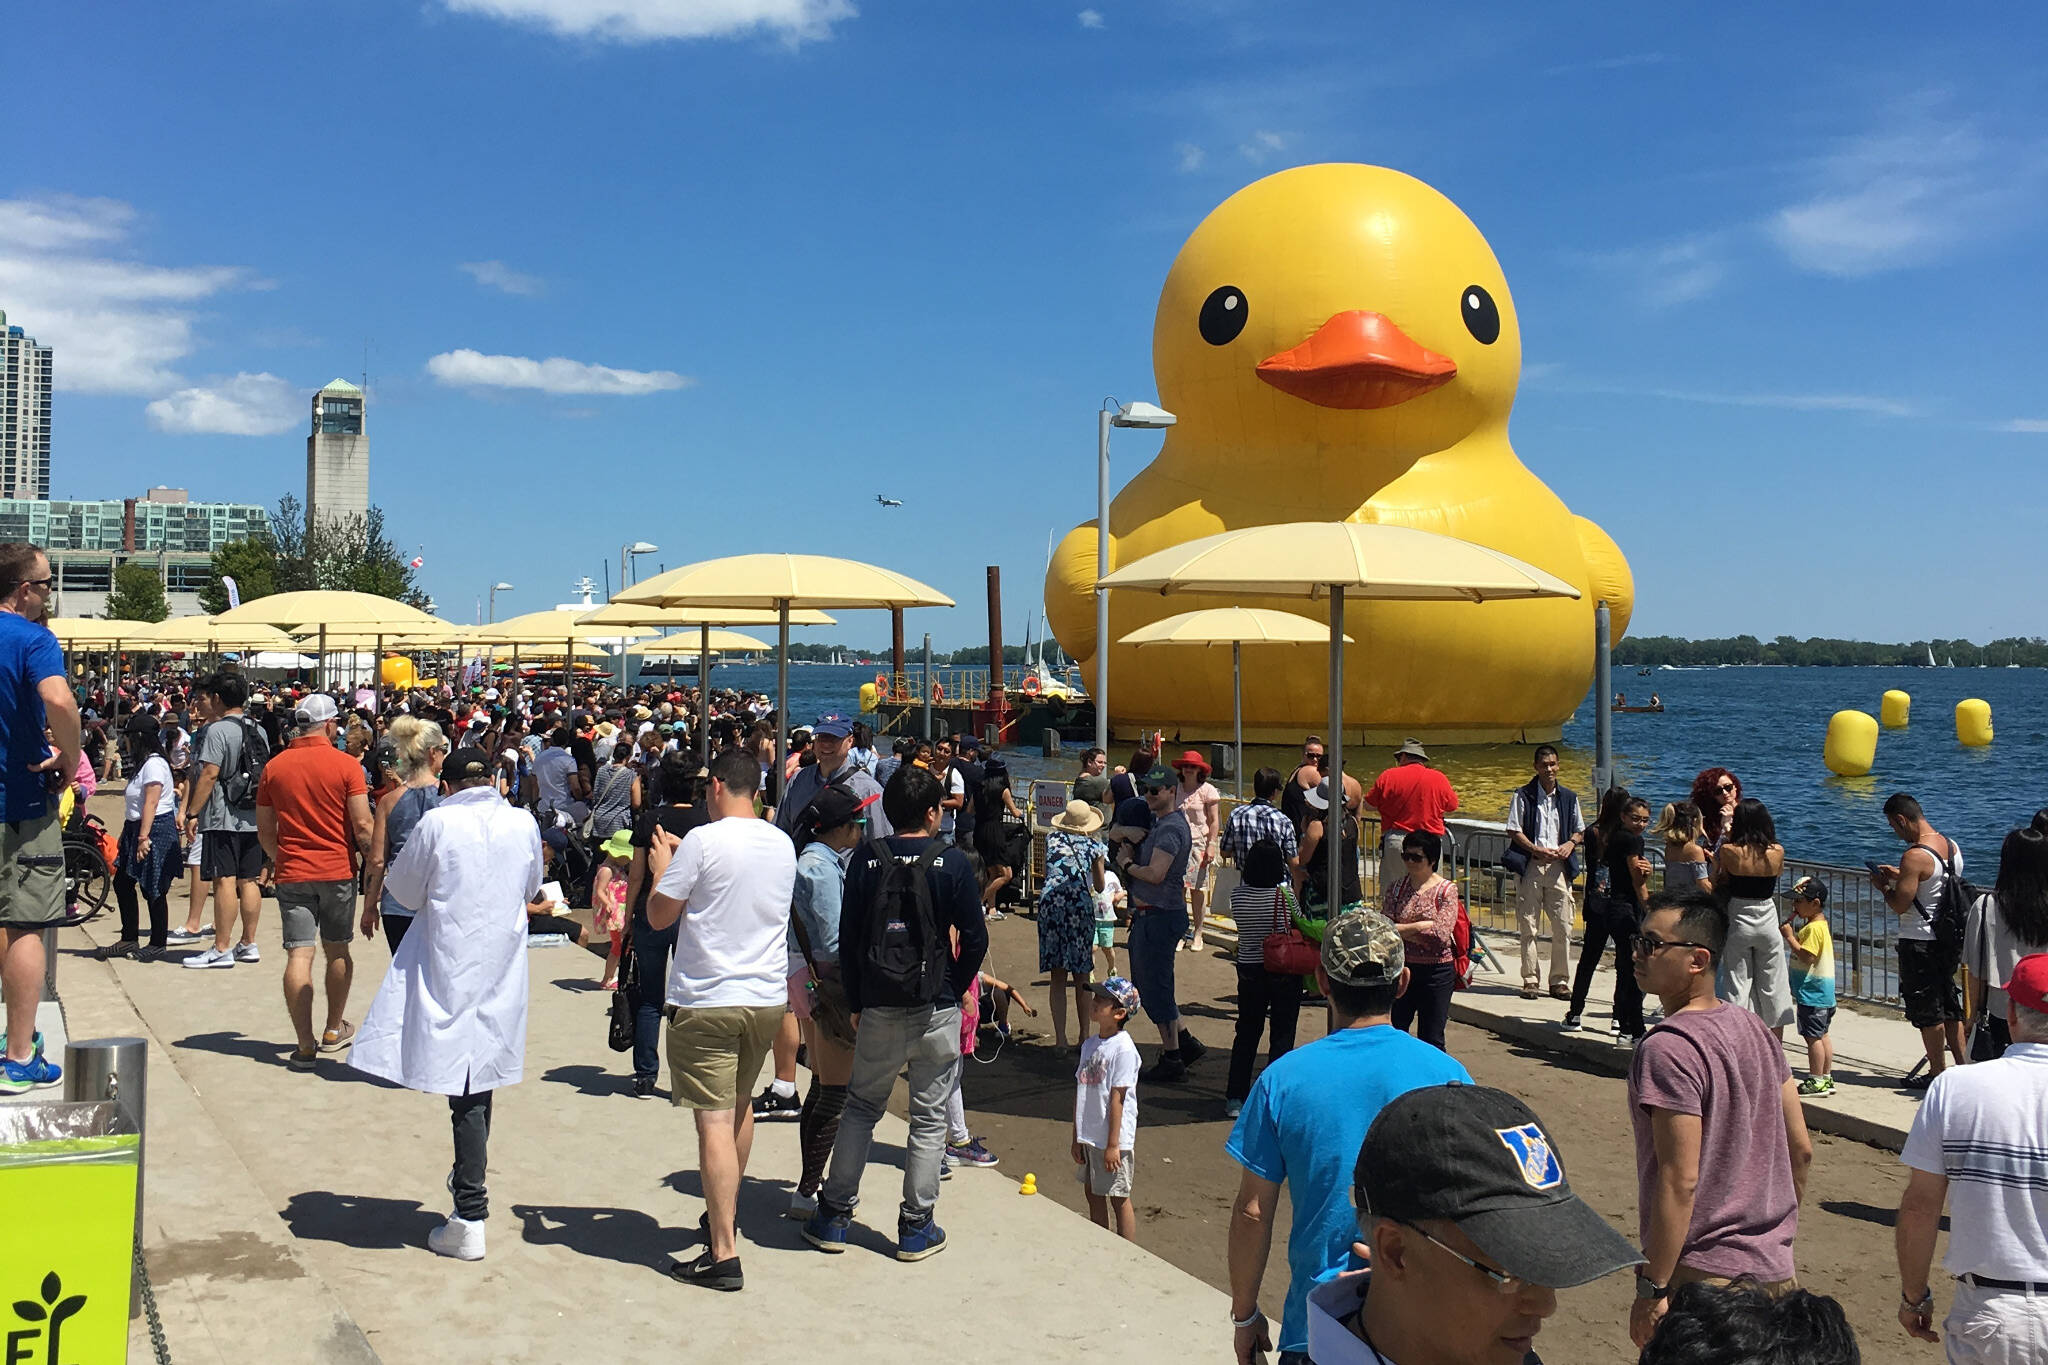 Toronto Rubber Duck